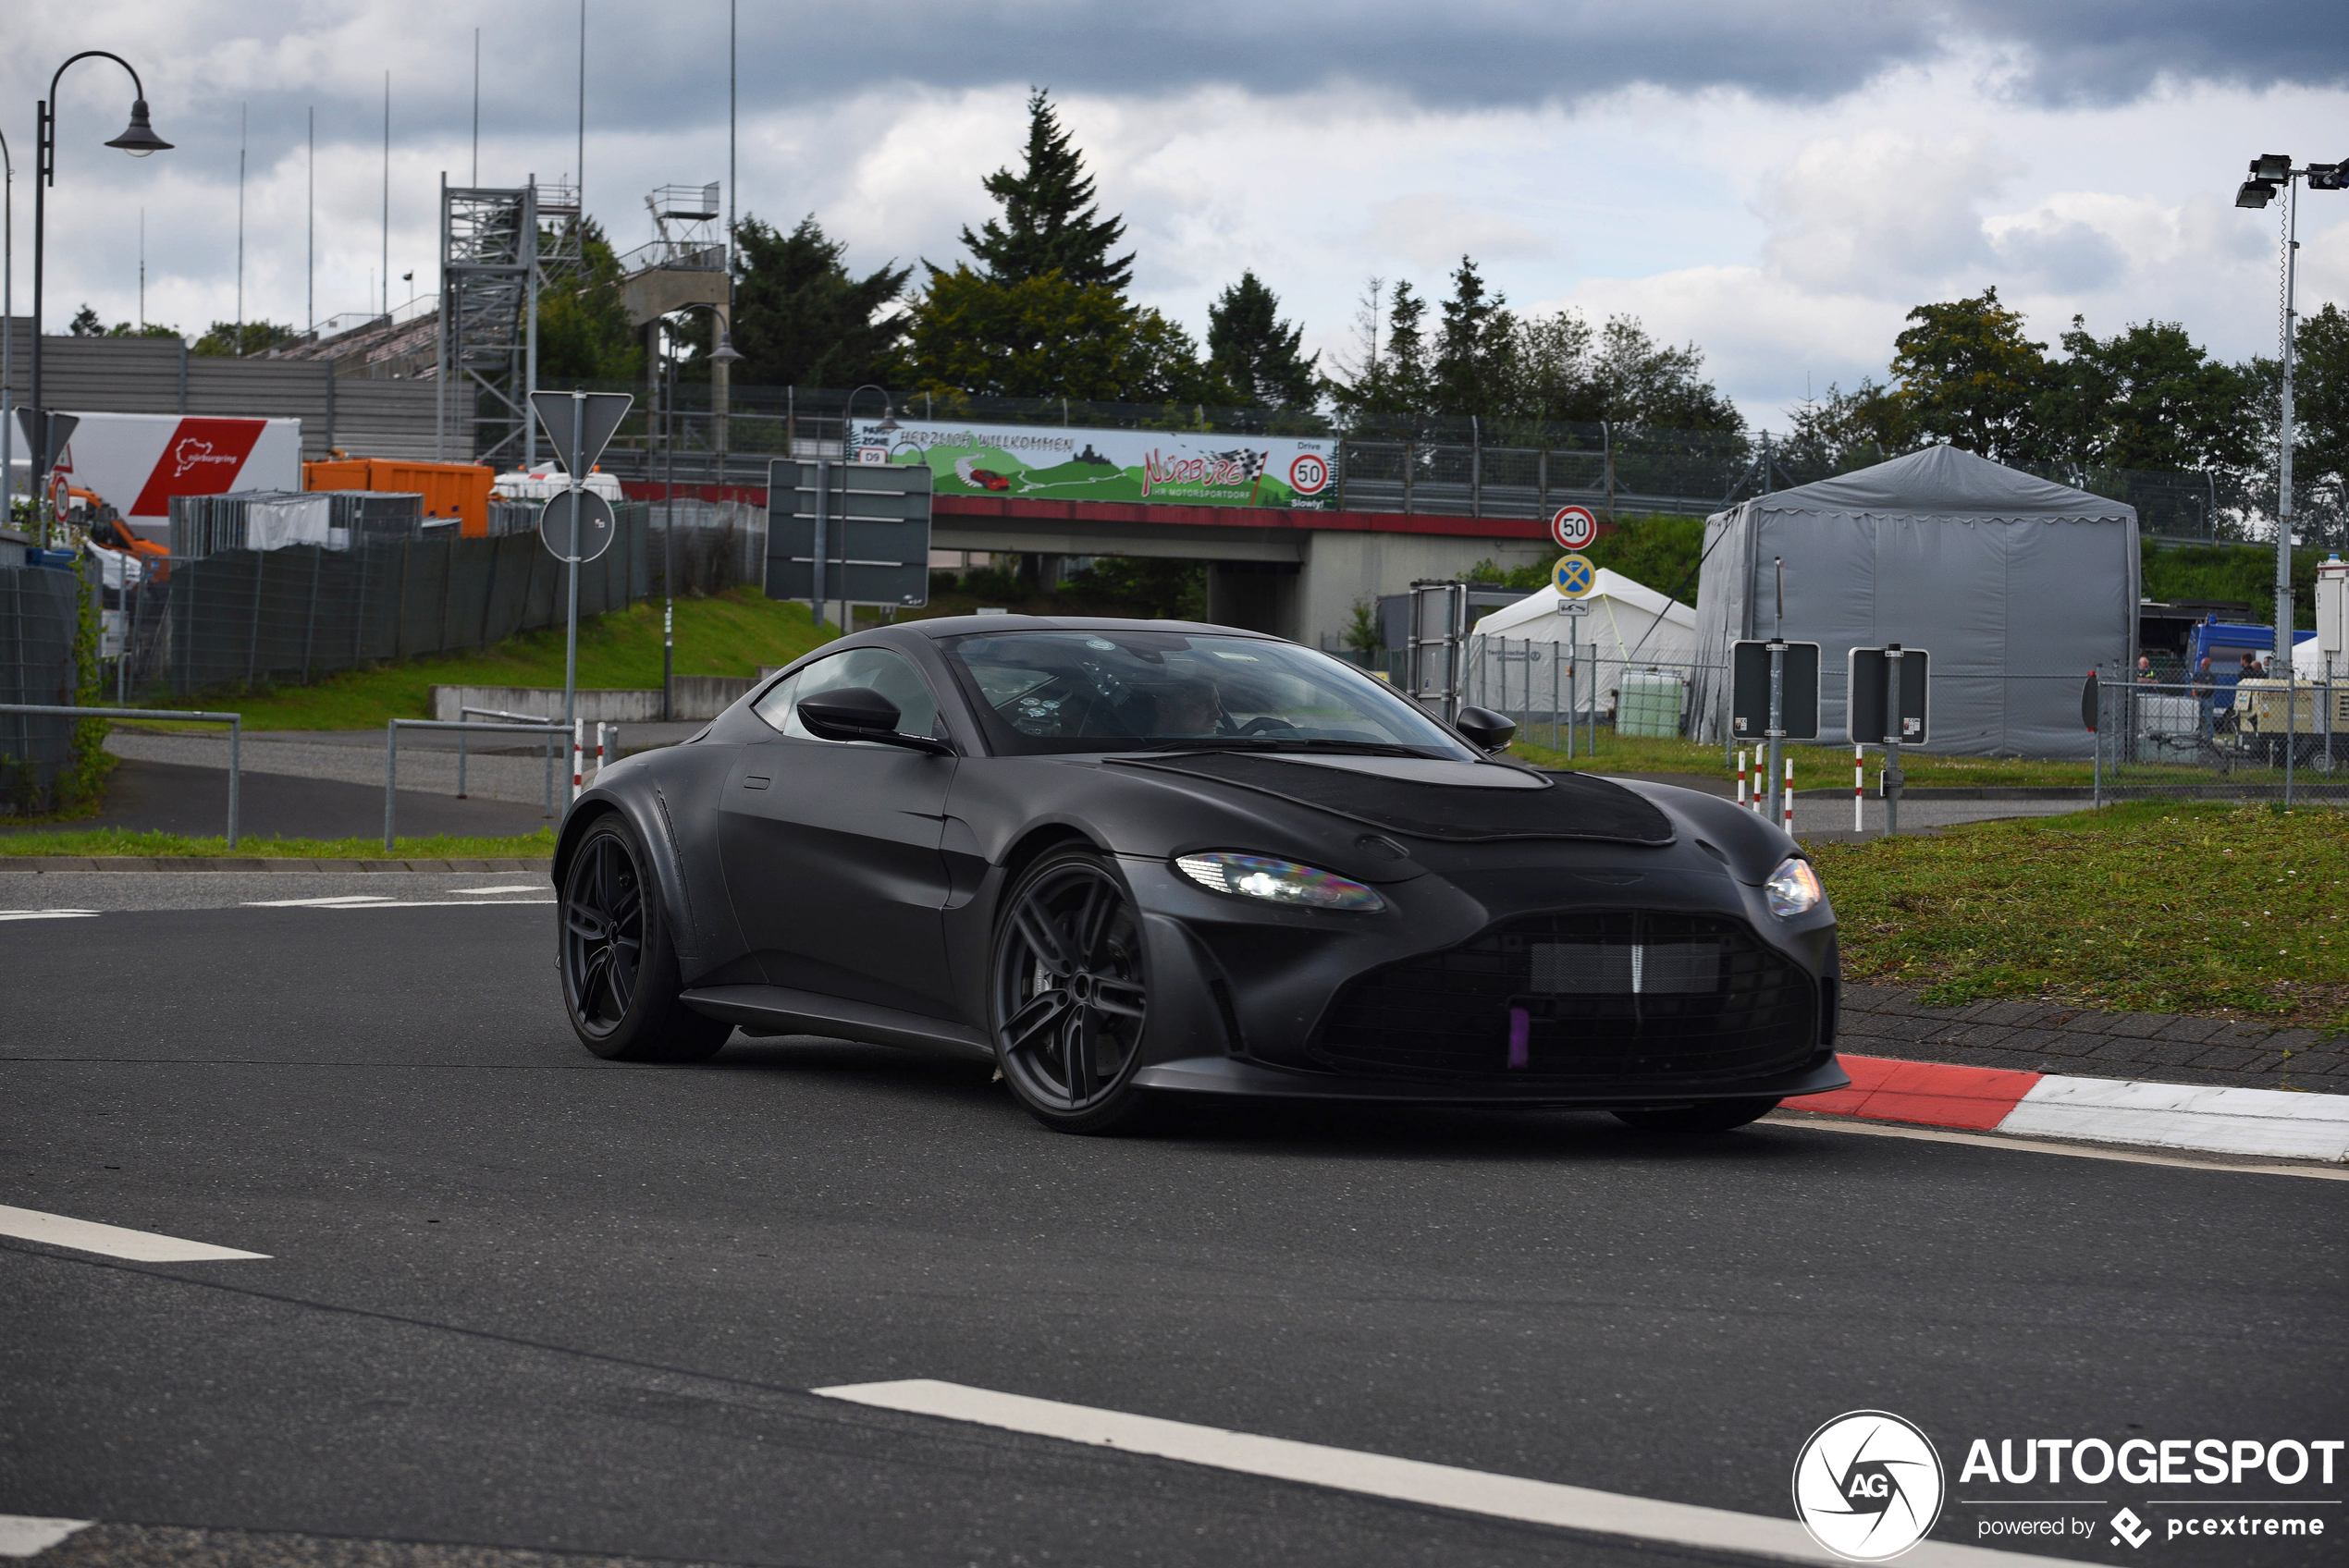 Are we getting an Aston Martin V12 Vantage?